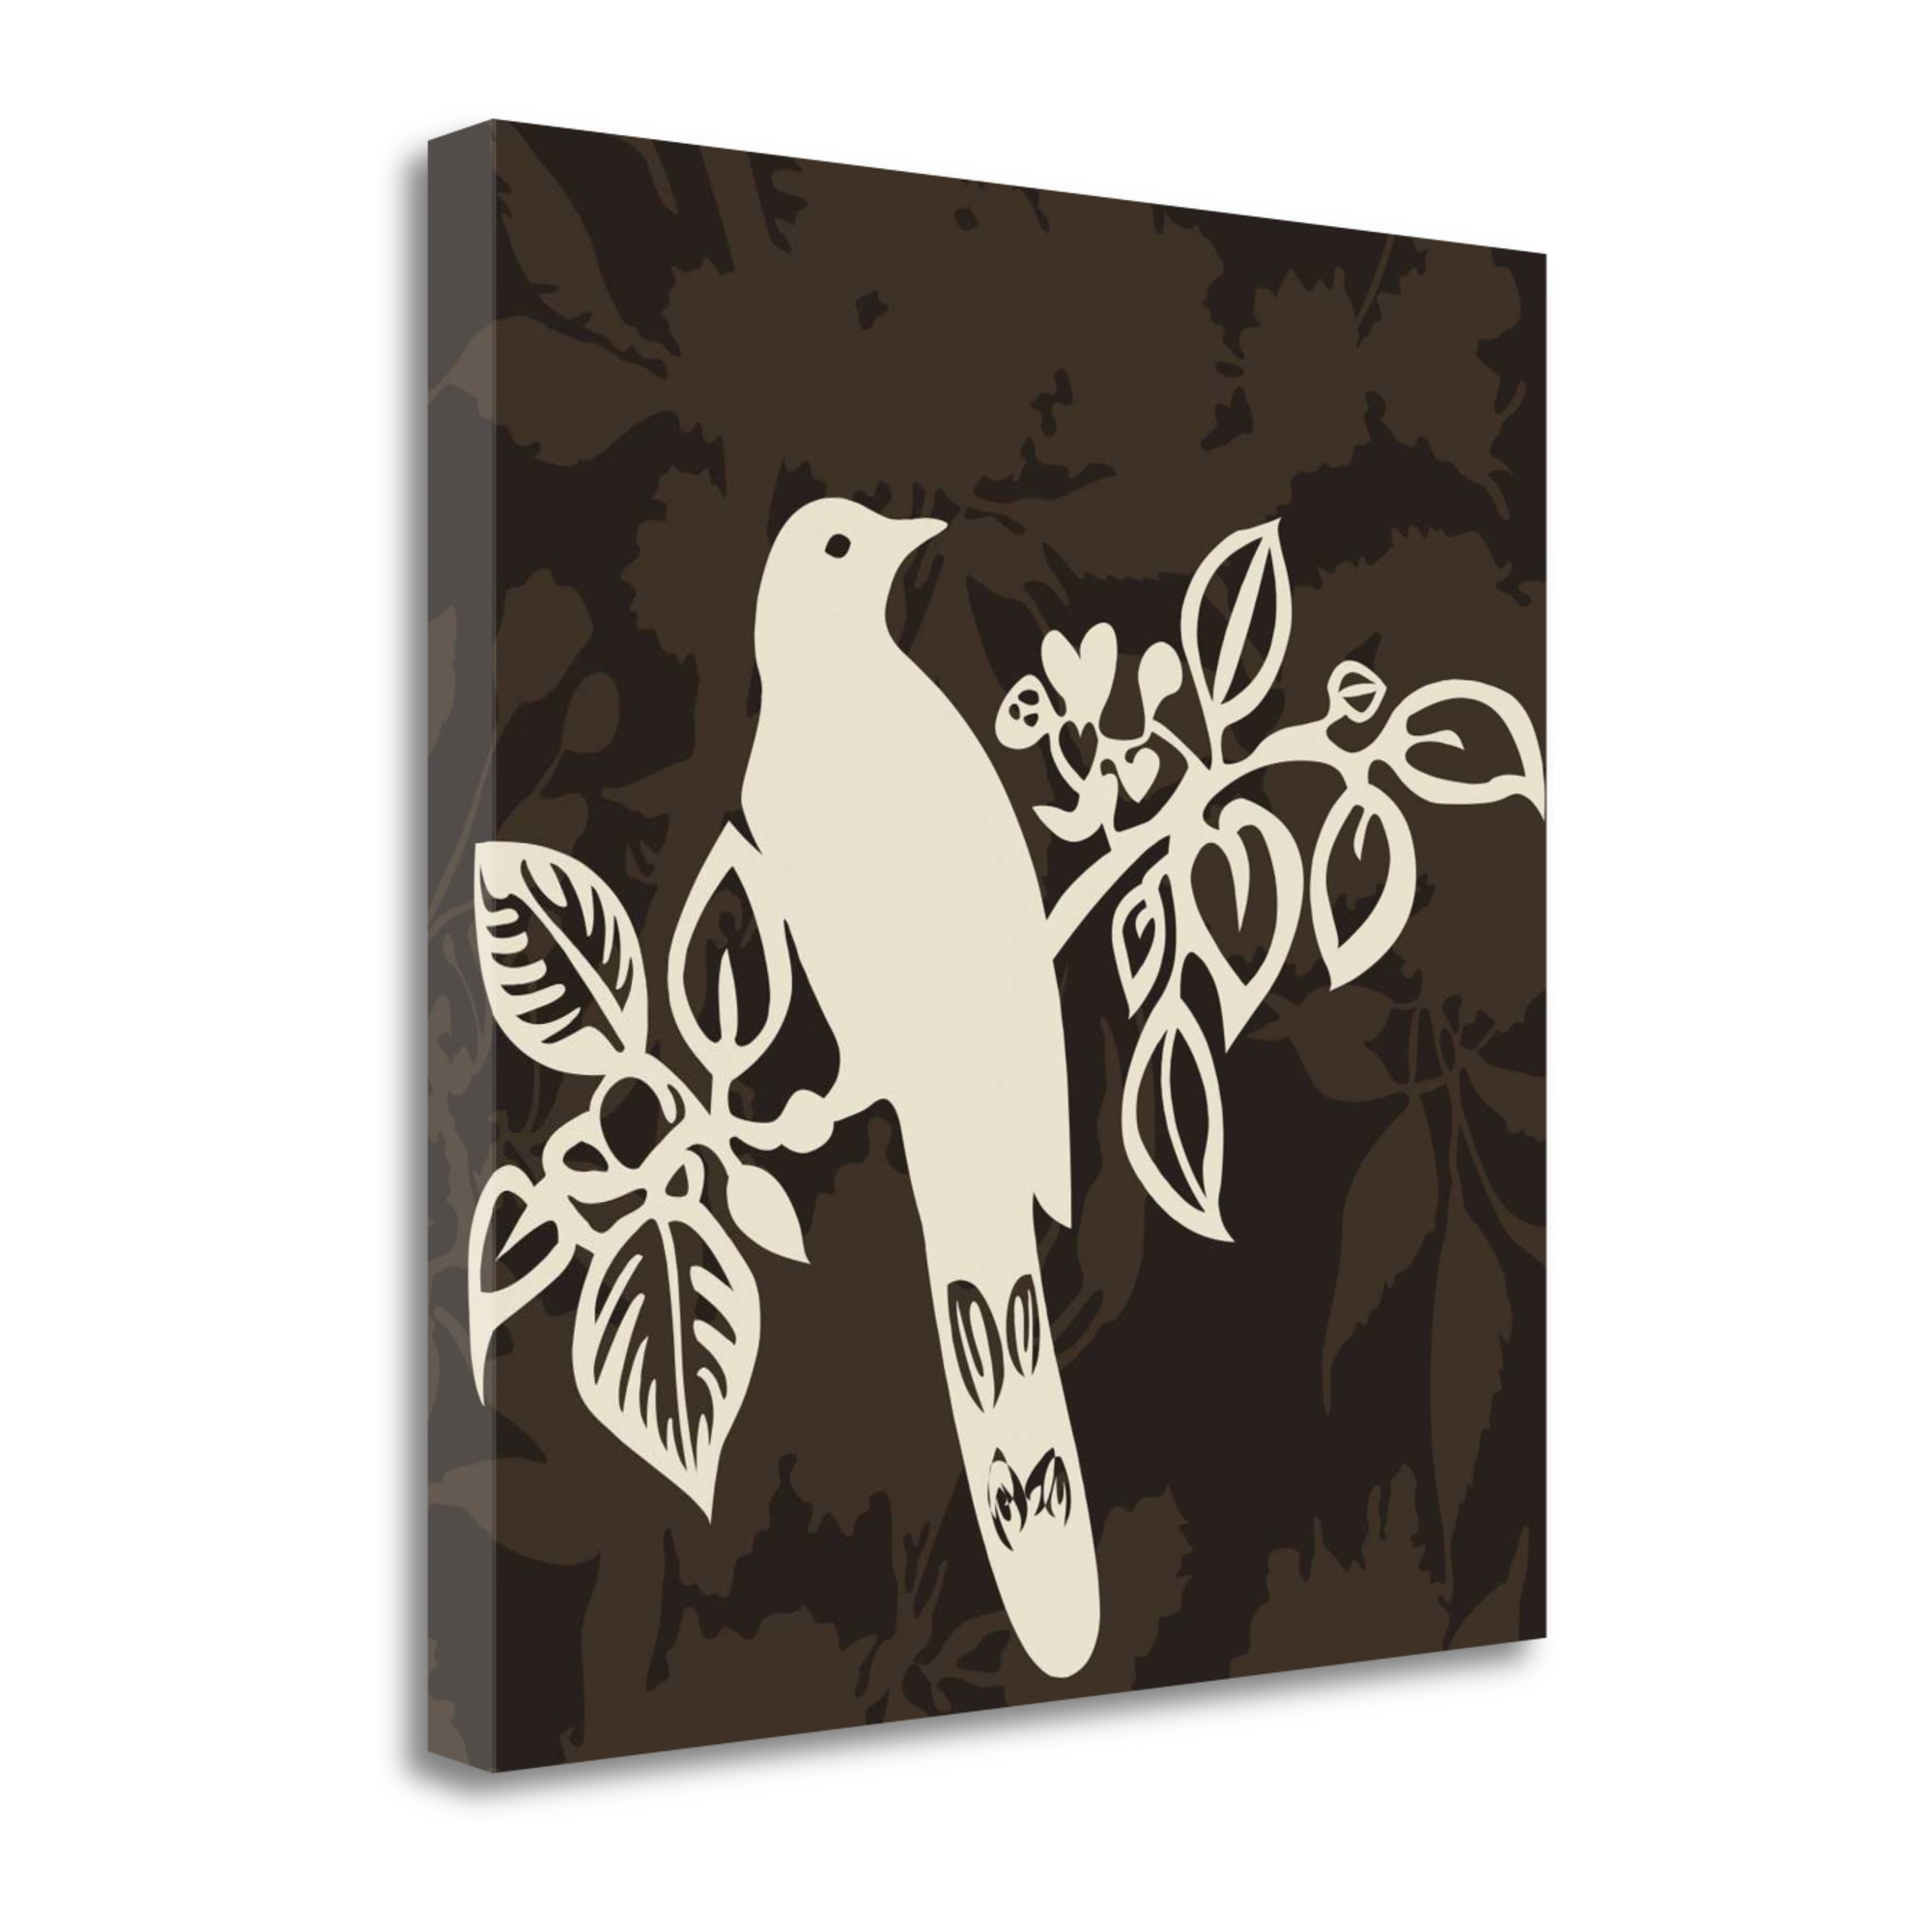 "Song Bird 2 By Jette Svane, 26"" x 26\"" Fine Art Giclee Print on Gallery Wrap Canvas, Ready to Hang"